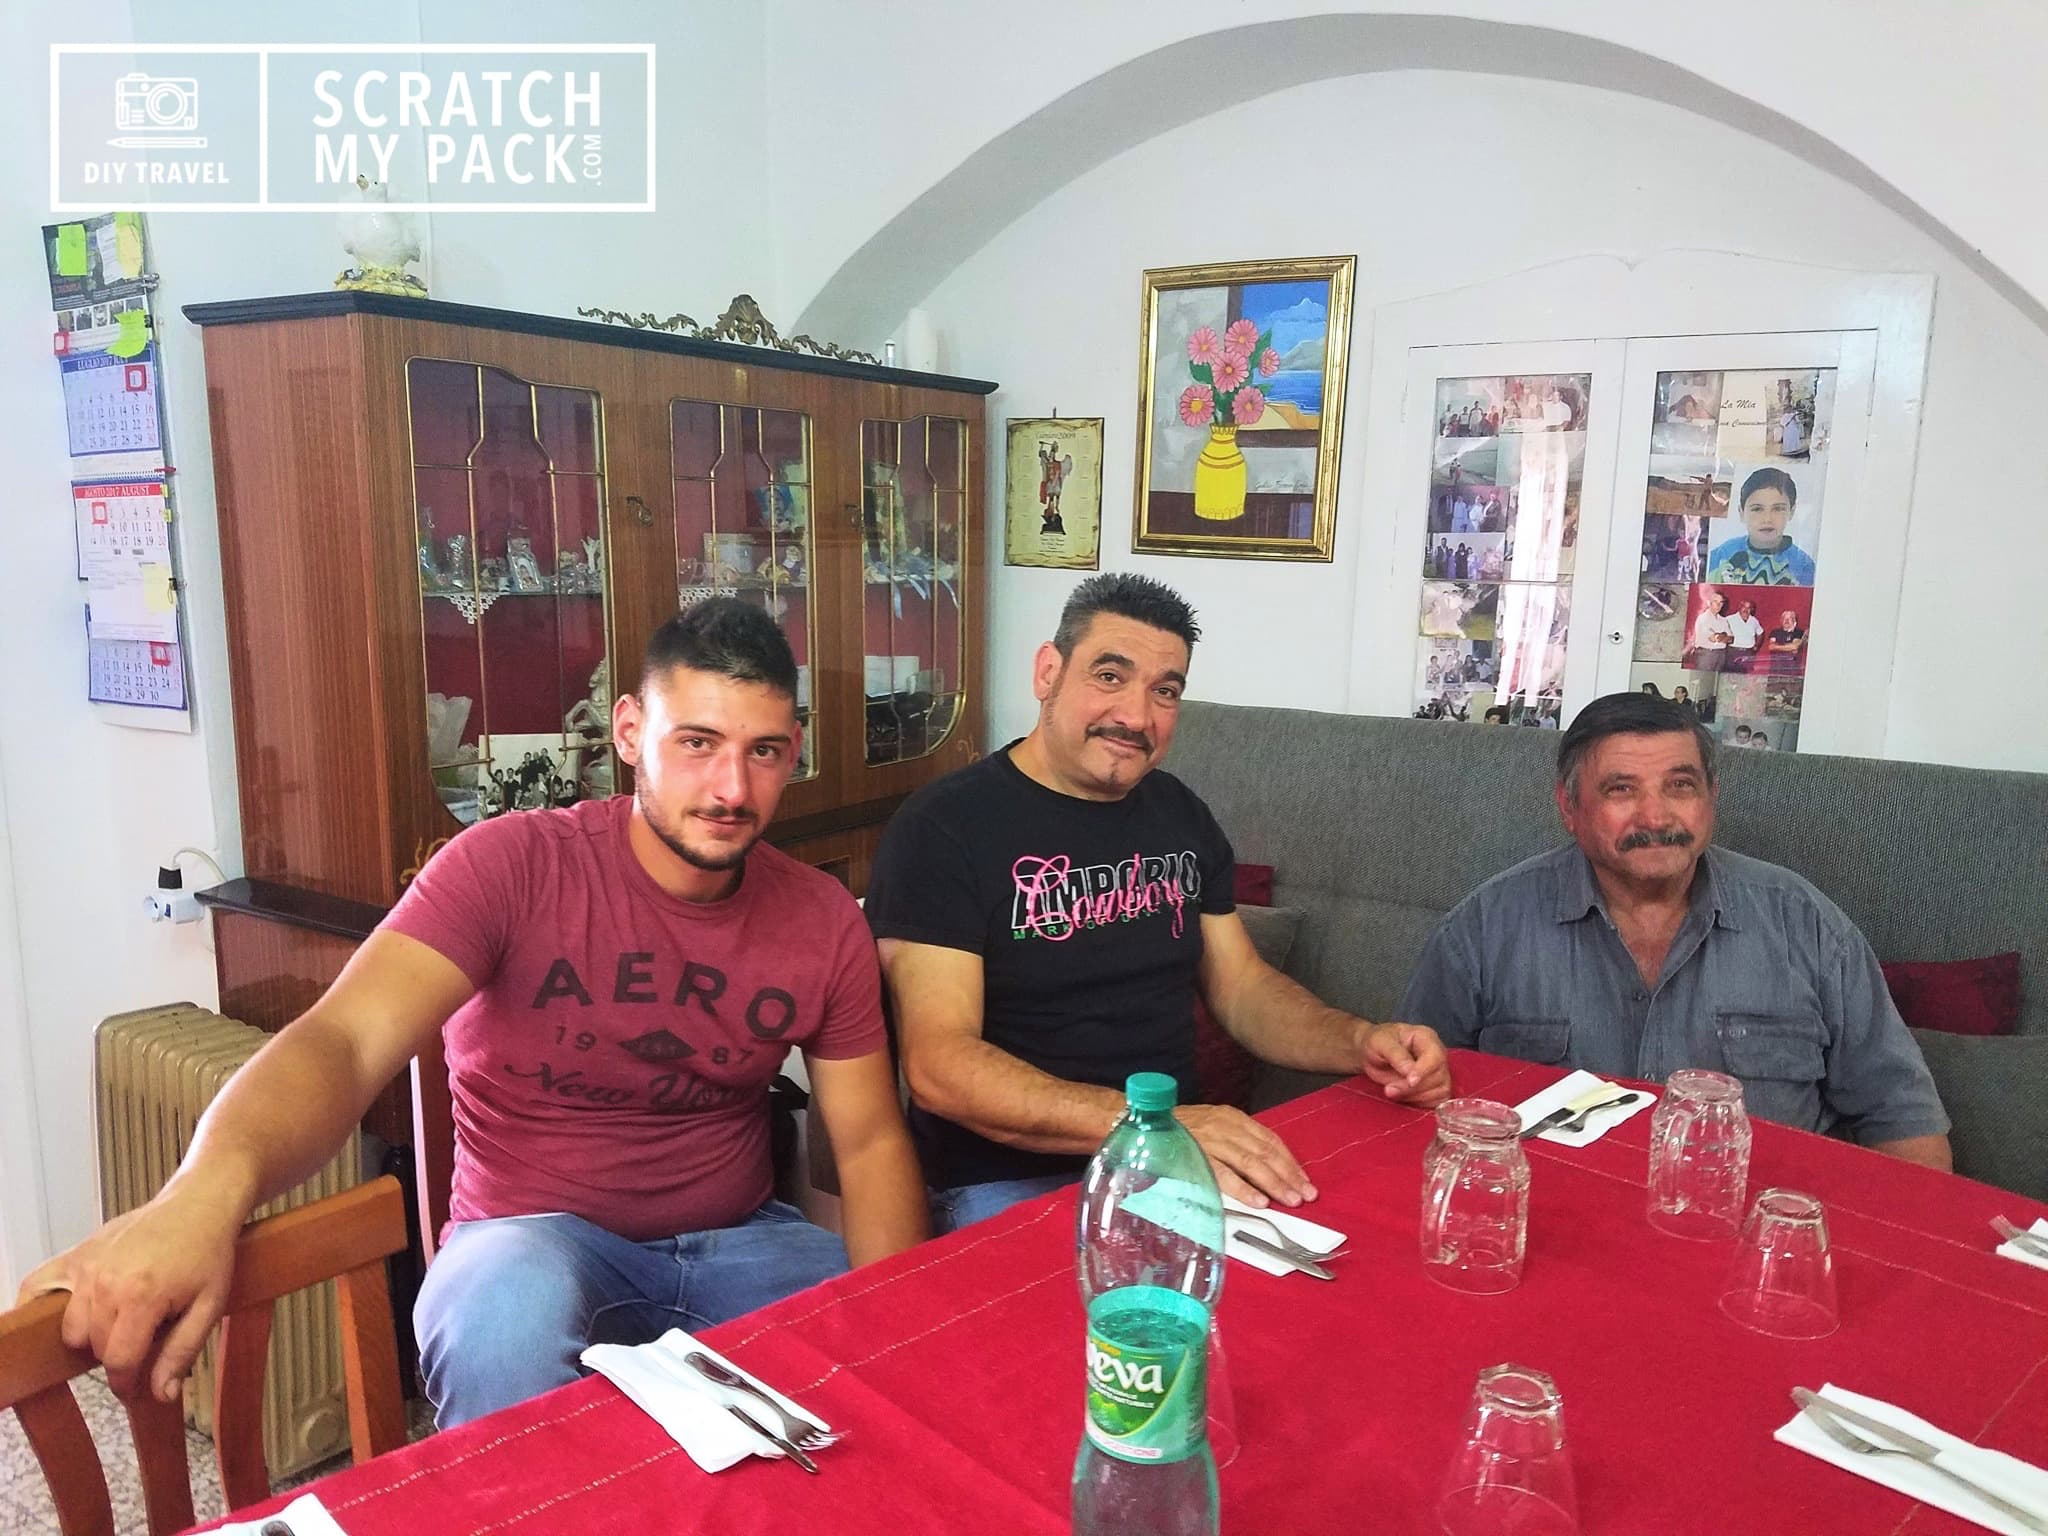 (Left to Right) Giovanni, Vincenzo, & Giuseppe